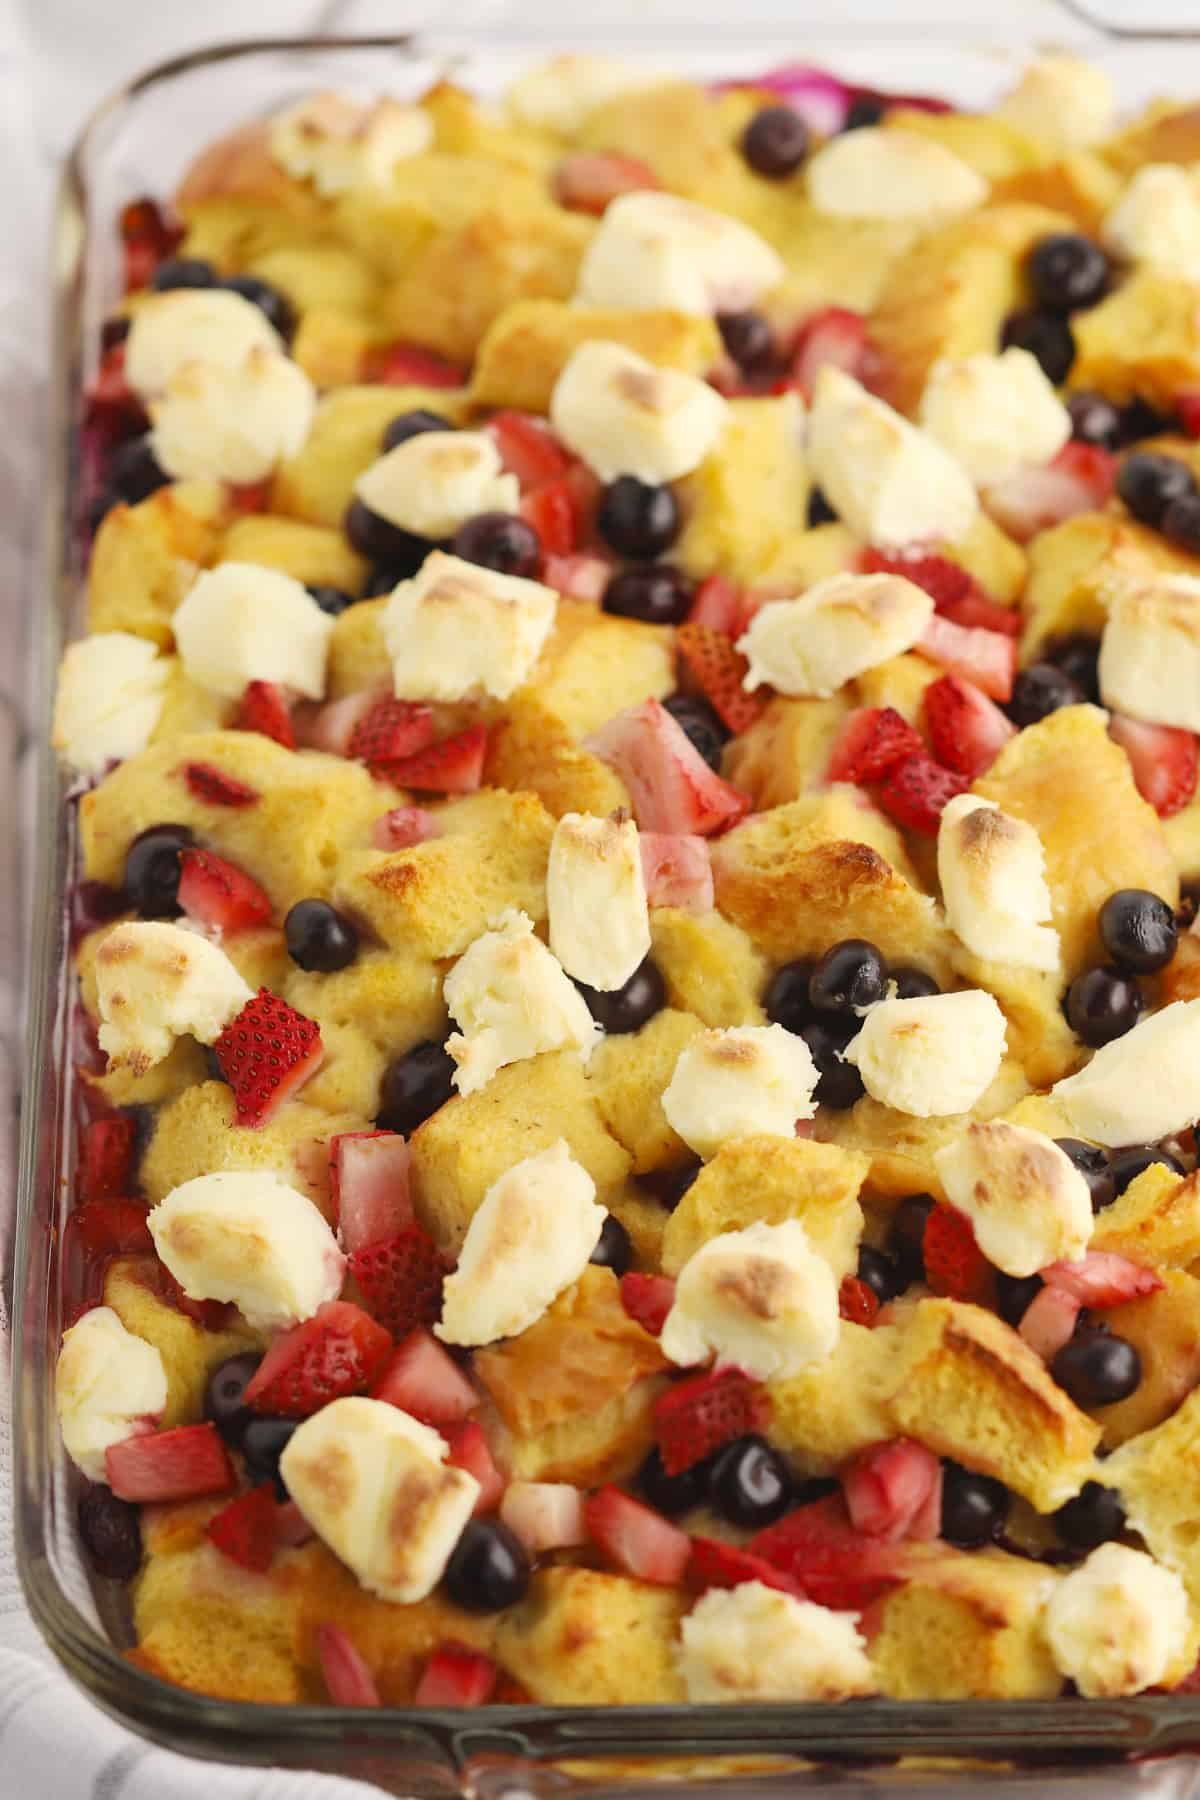 French toast bake topped with blueberries, strawberries and cream cheese.